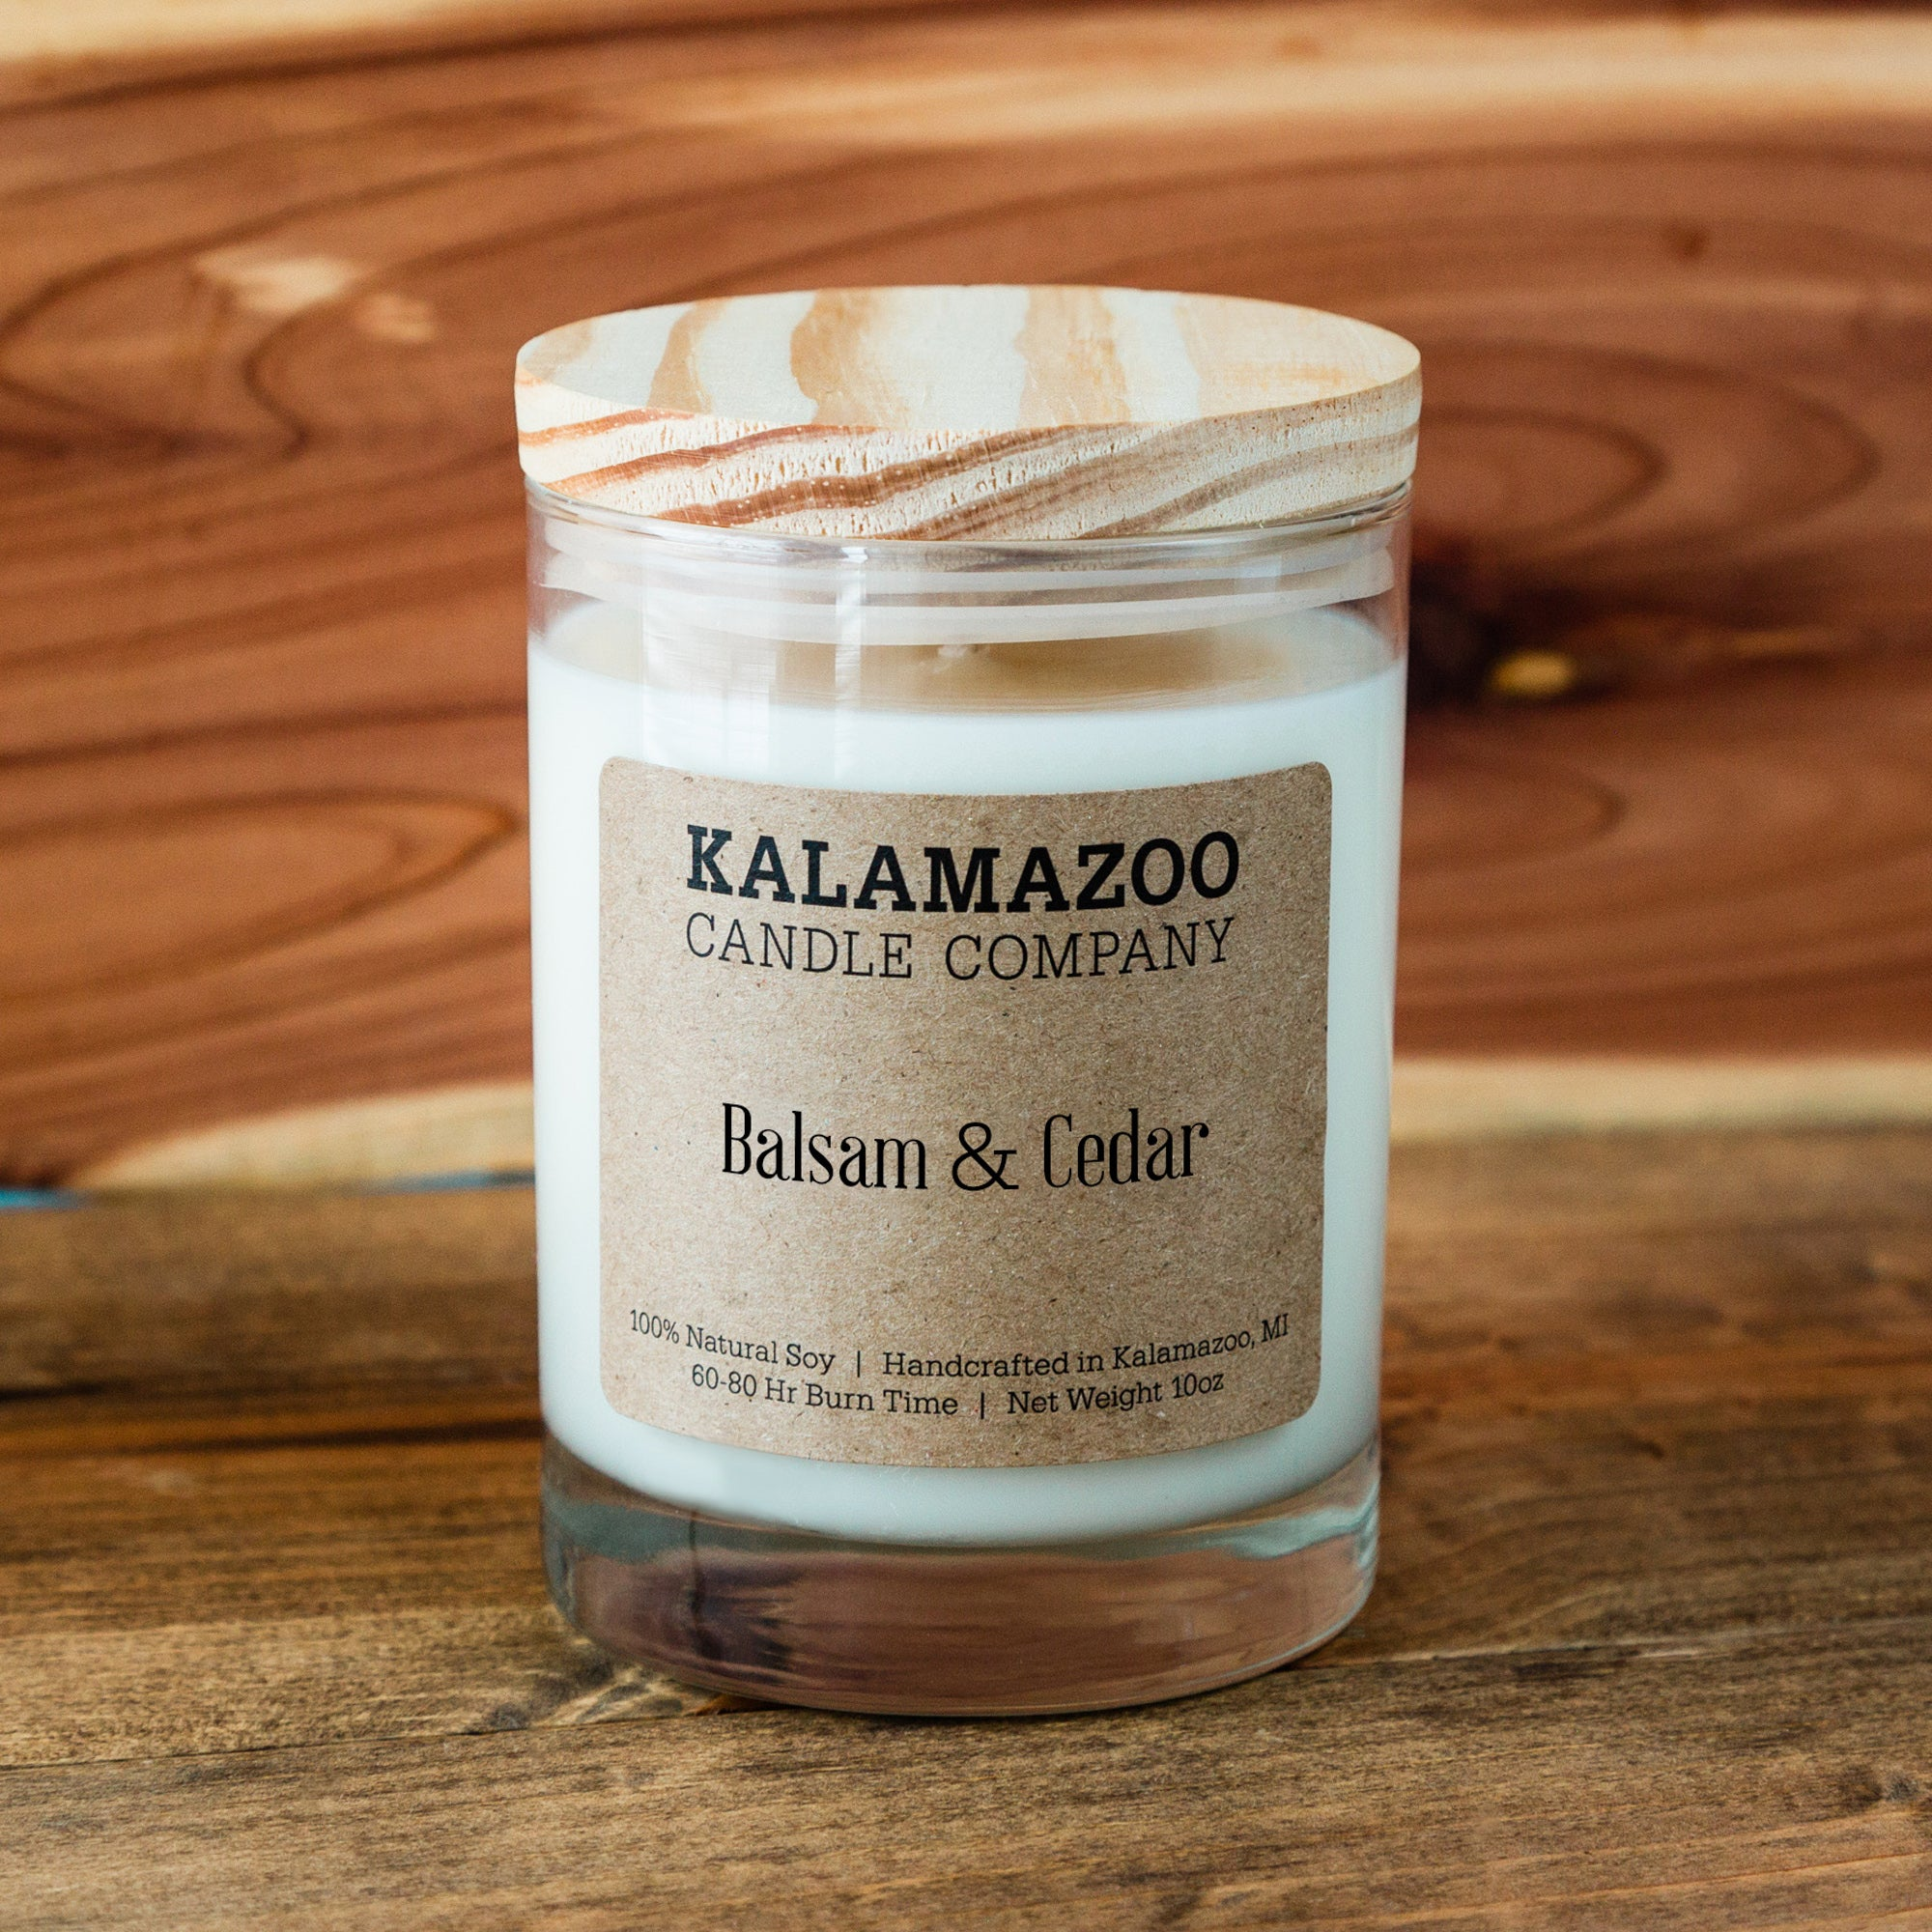 Balsam & Cedar Candle: 10oz Jar